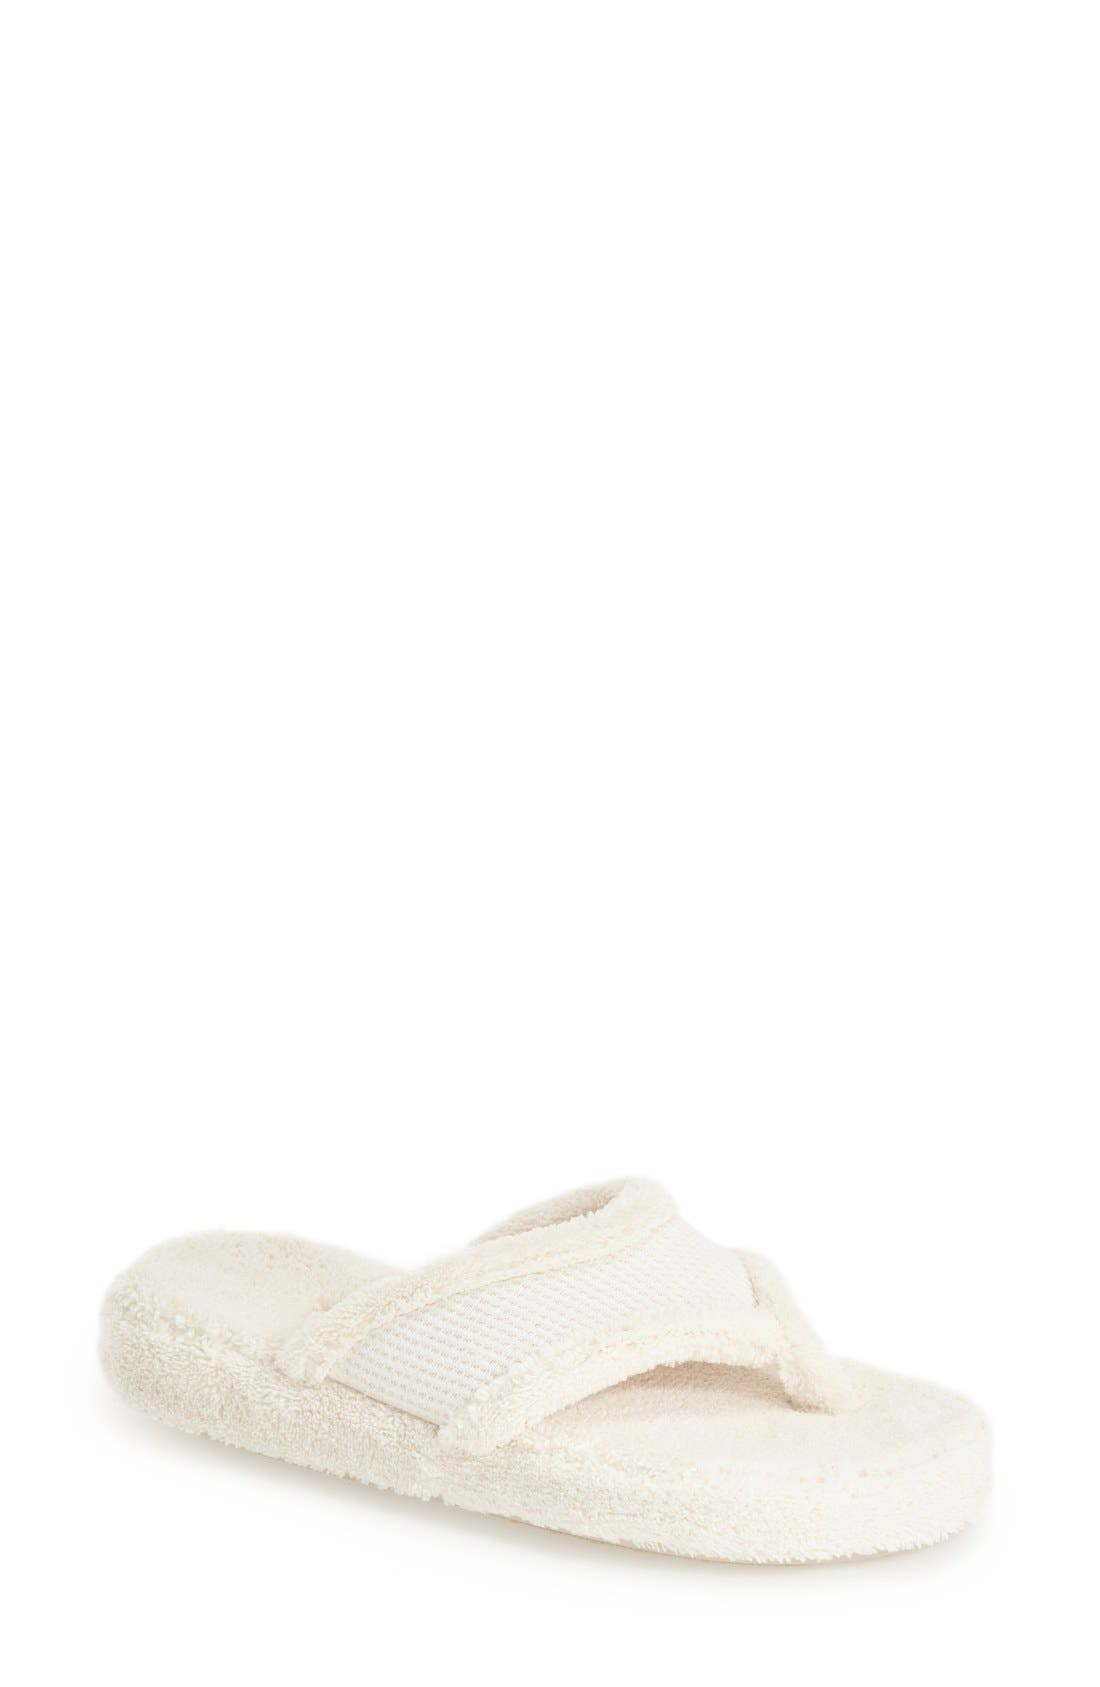 ACORN 'Waffle' Spa Slipper in Natural